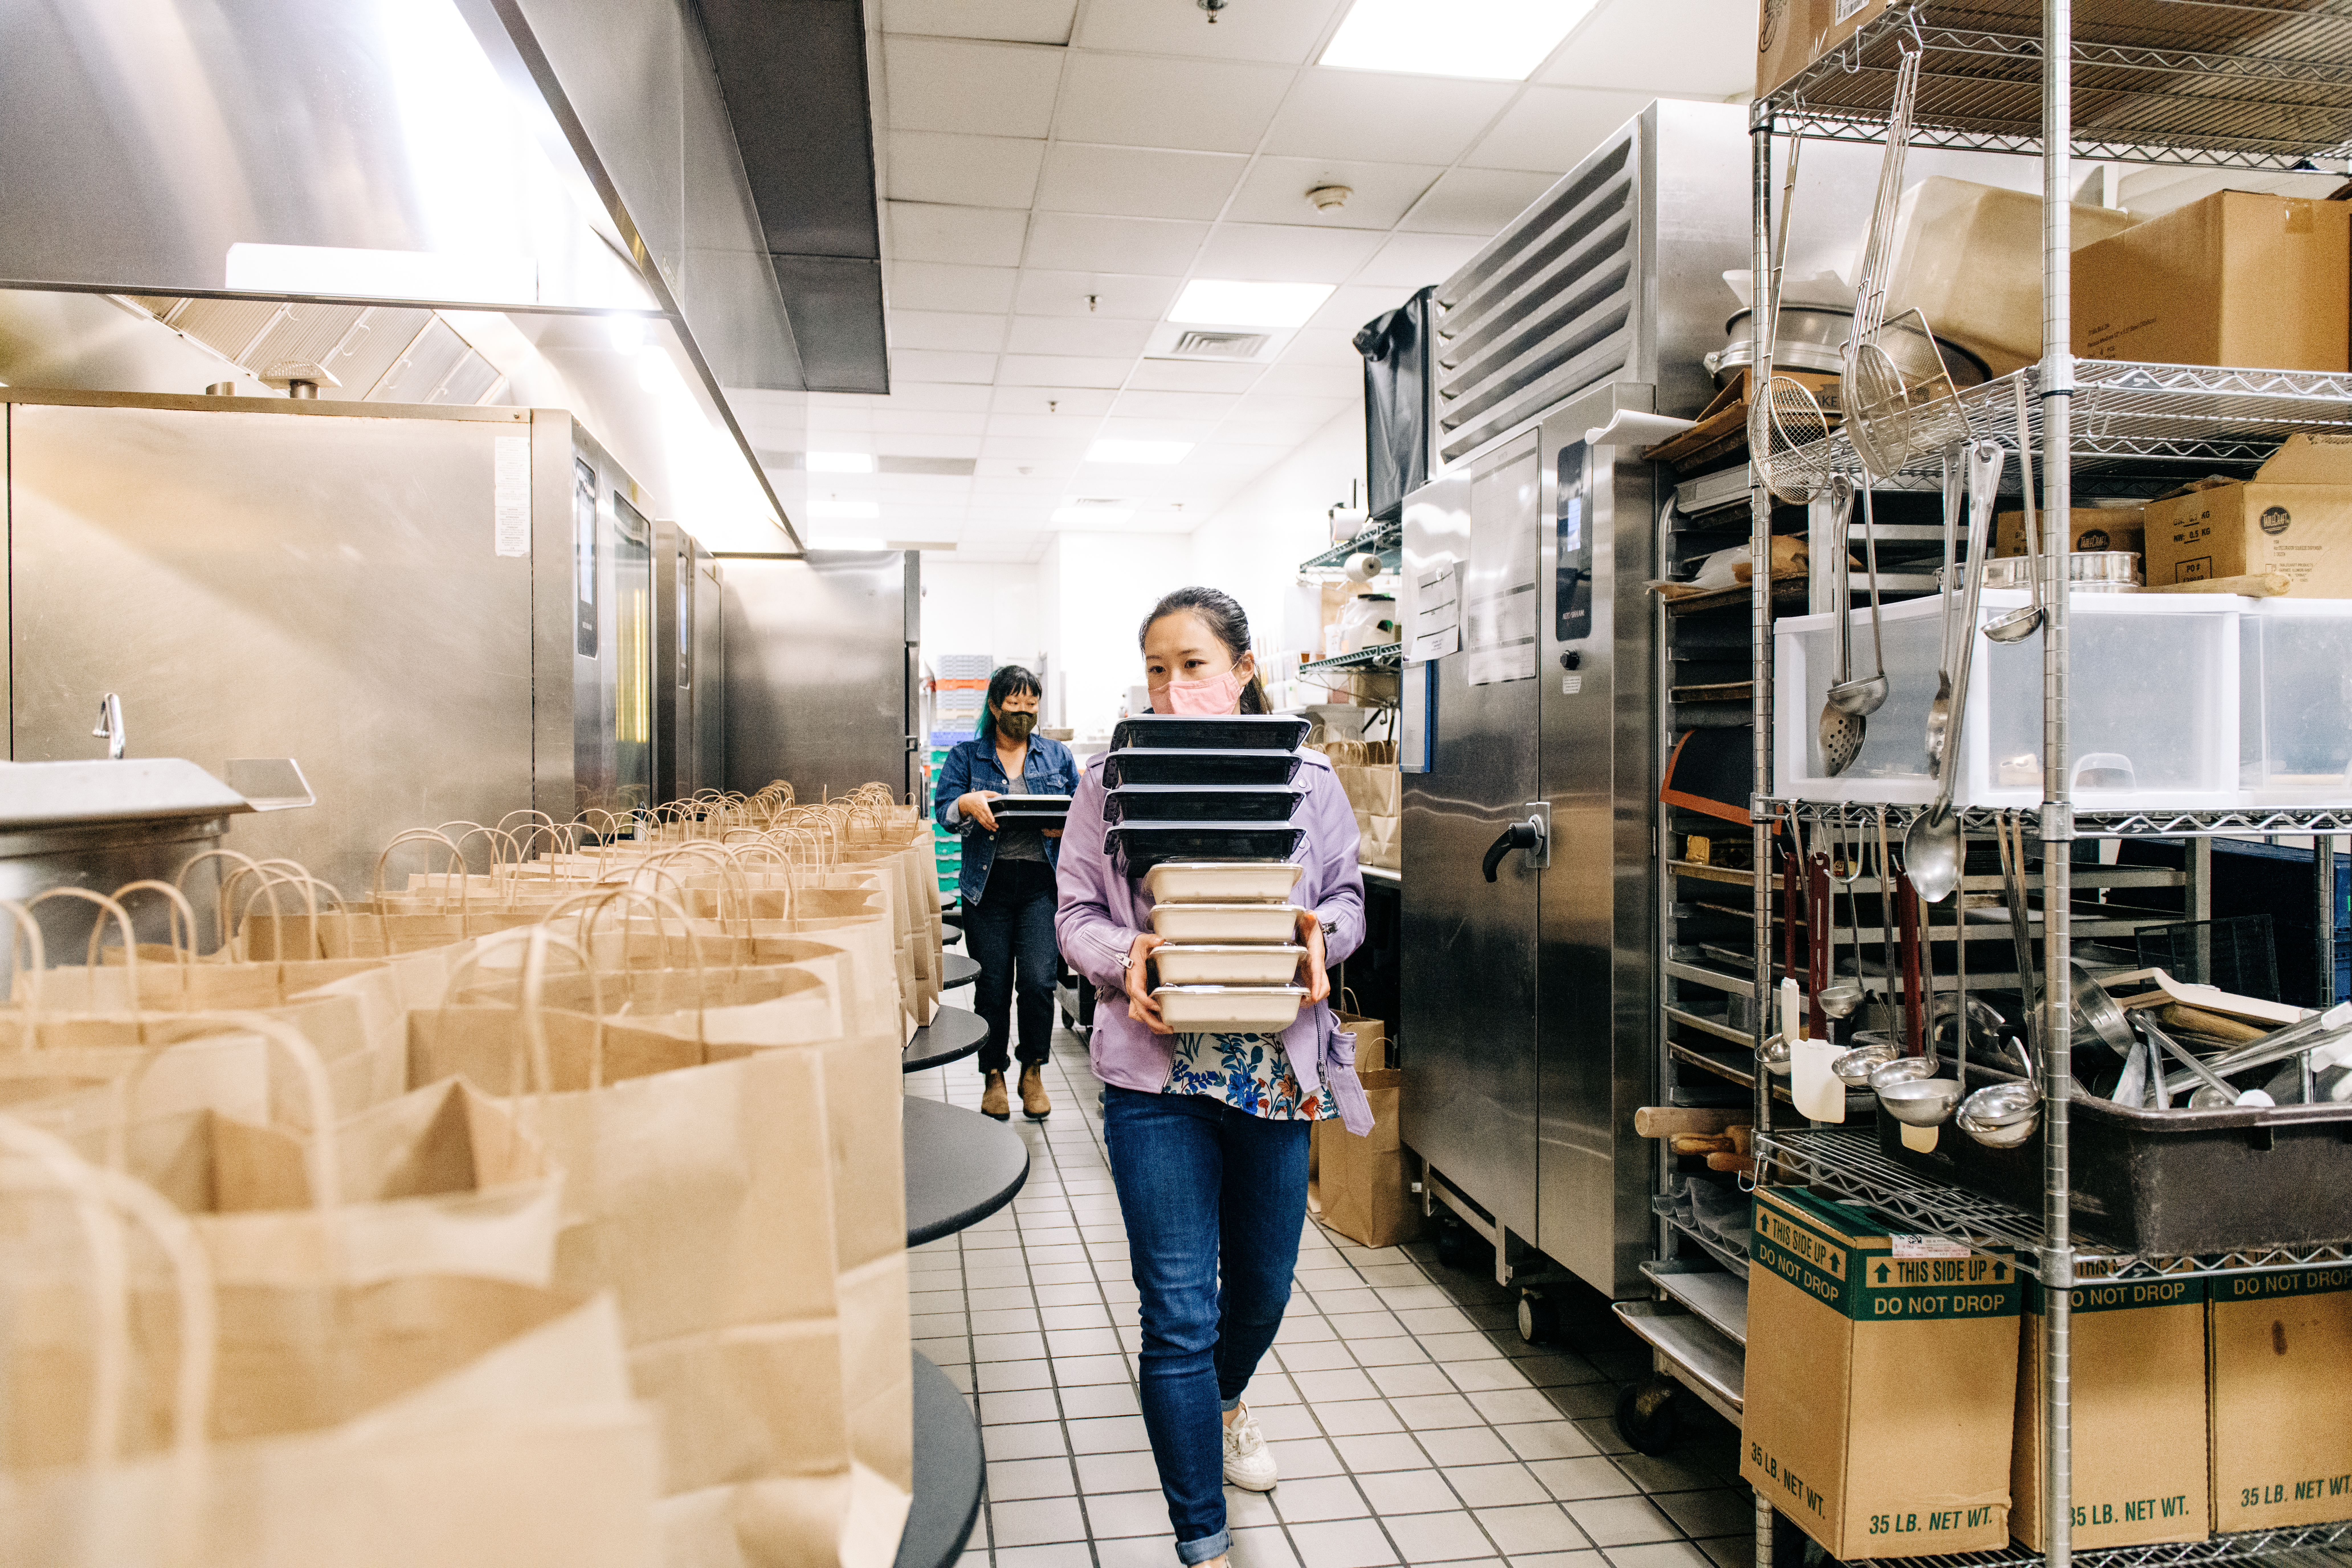 Chefs Stopping AAPI Hate volunteers Lillie Zheng and Helen Choe carry stacks of takeout boxes next to a table prepared with bags inside the kitchen at Moon Rabbit in D.C,